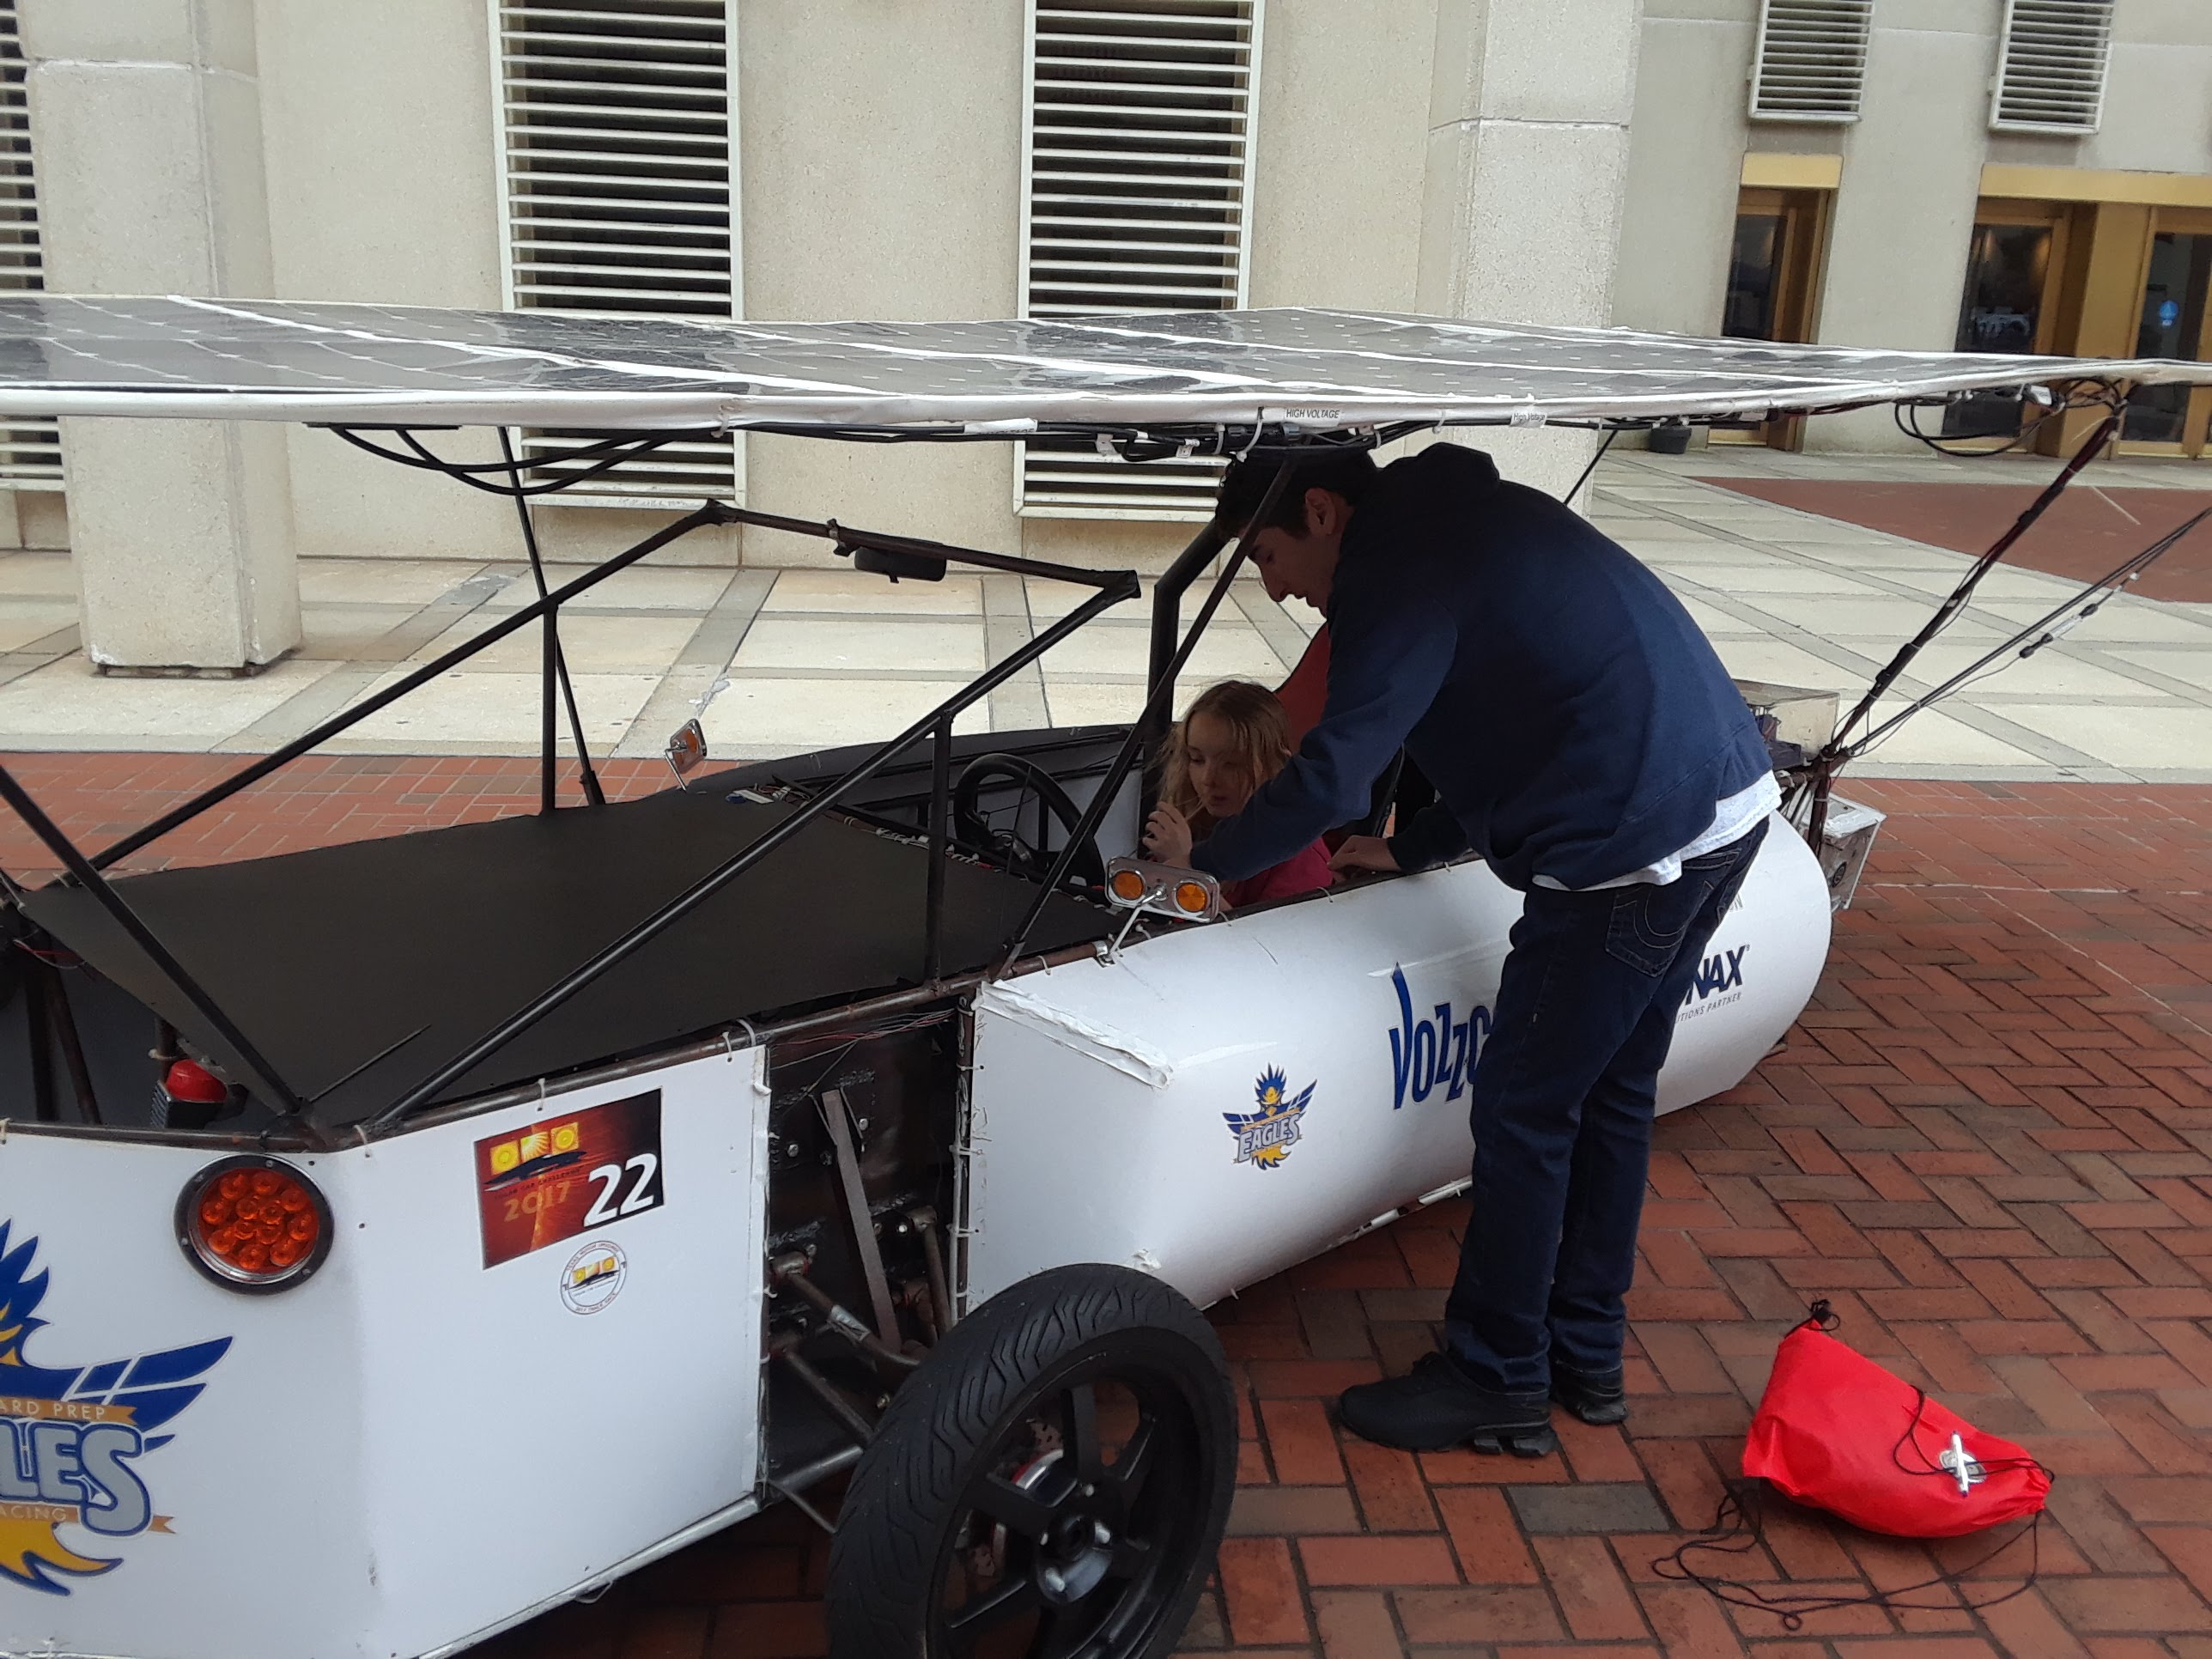 Showing People the Solar Car